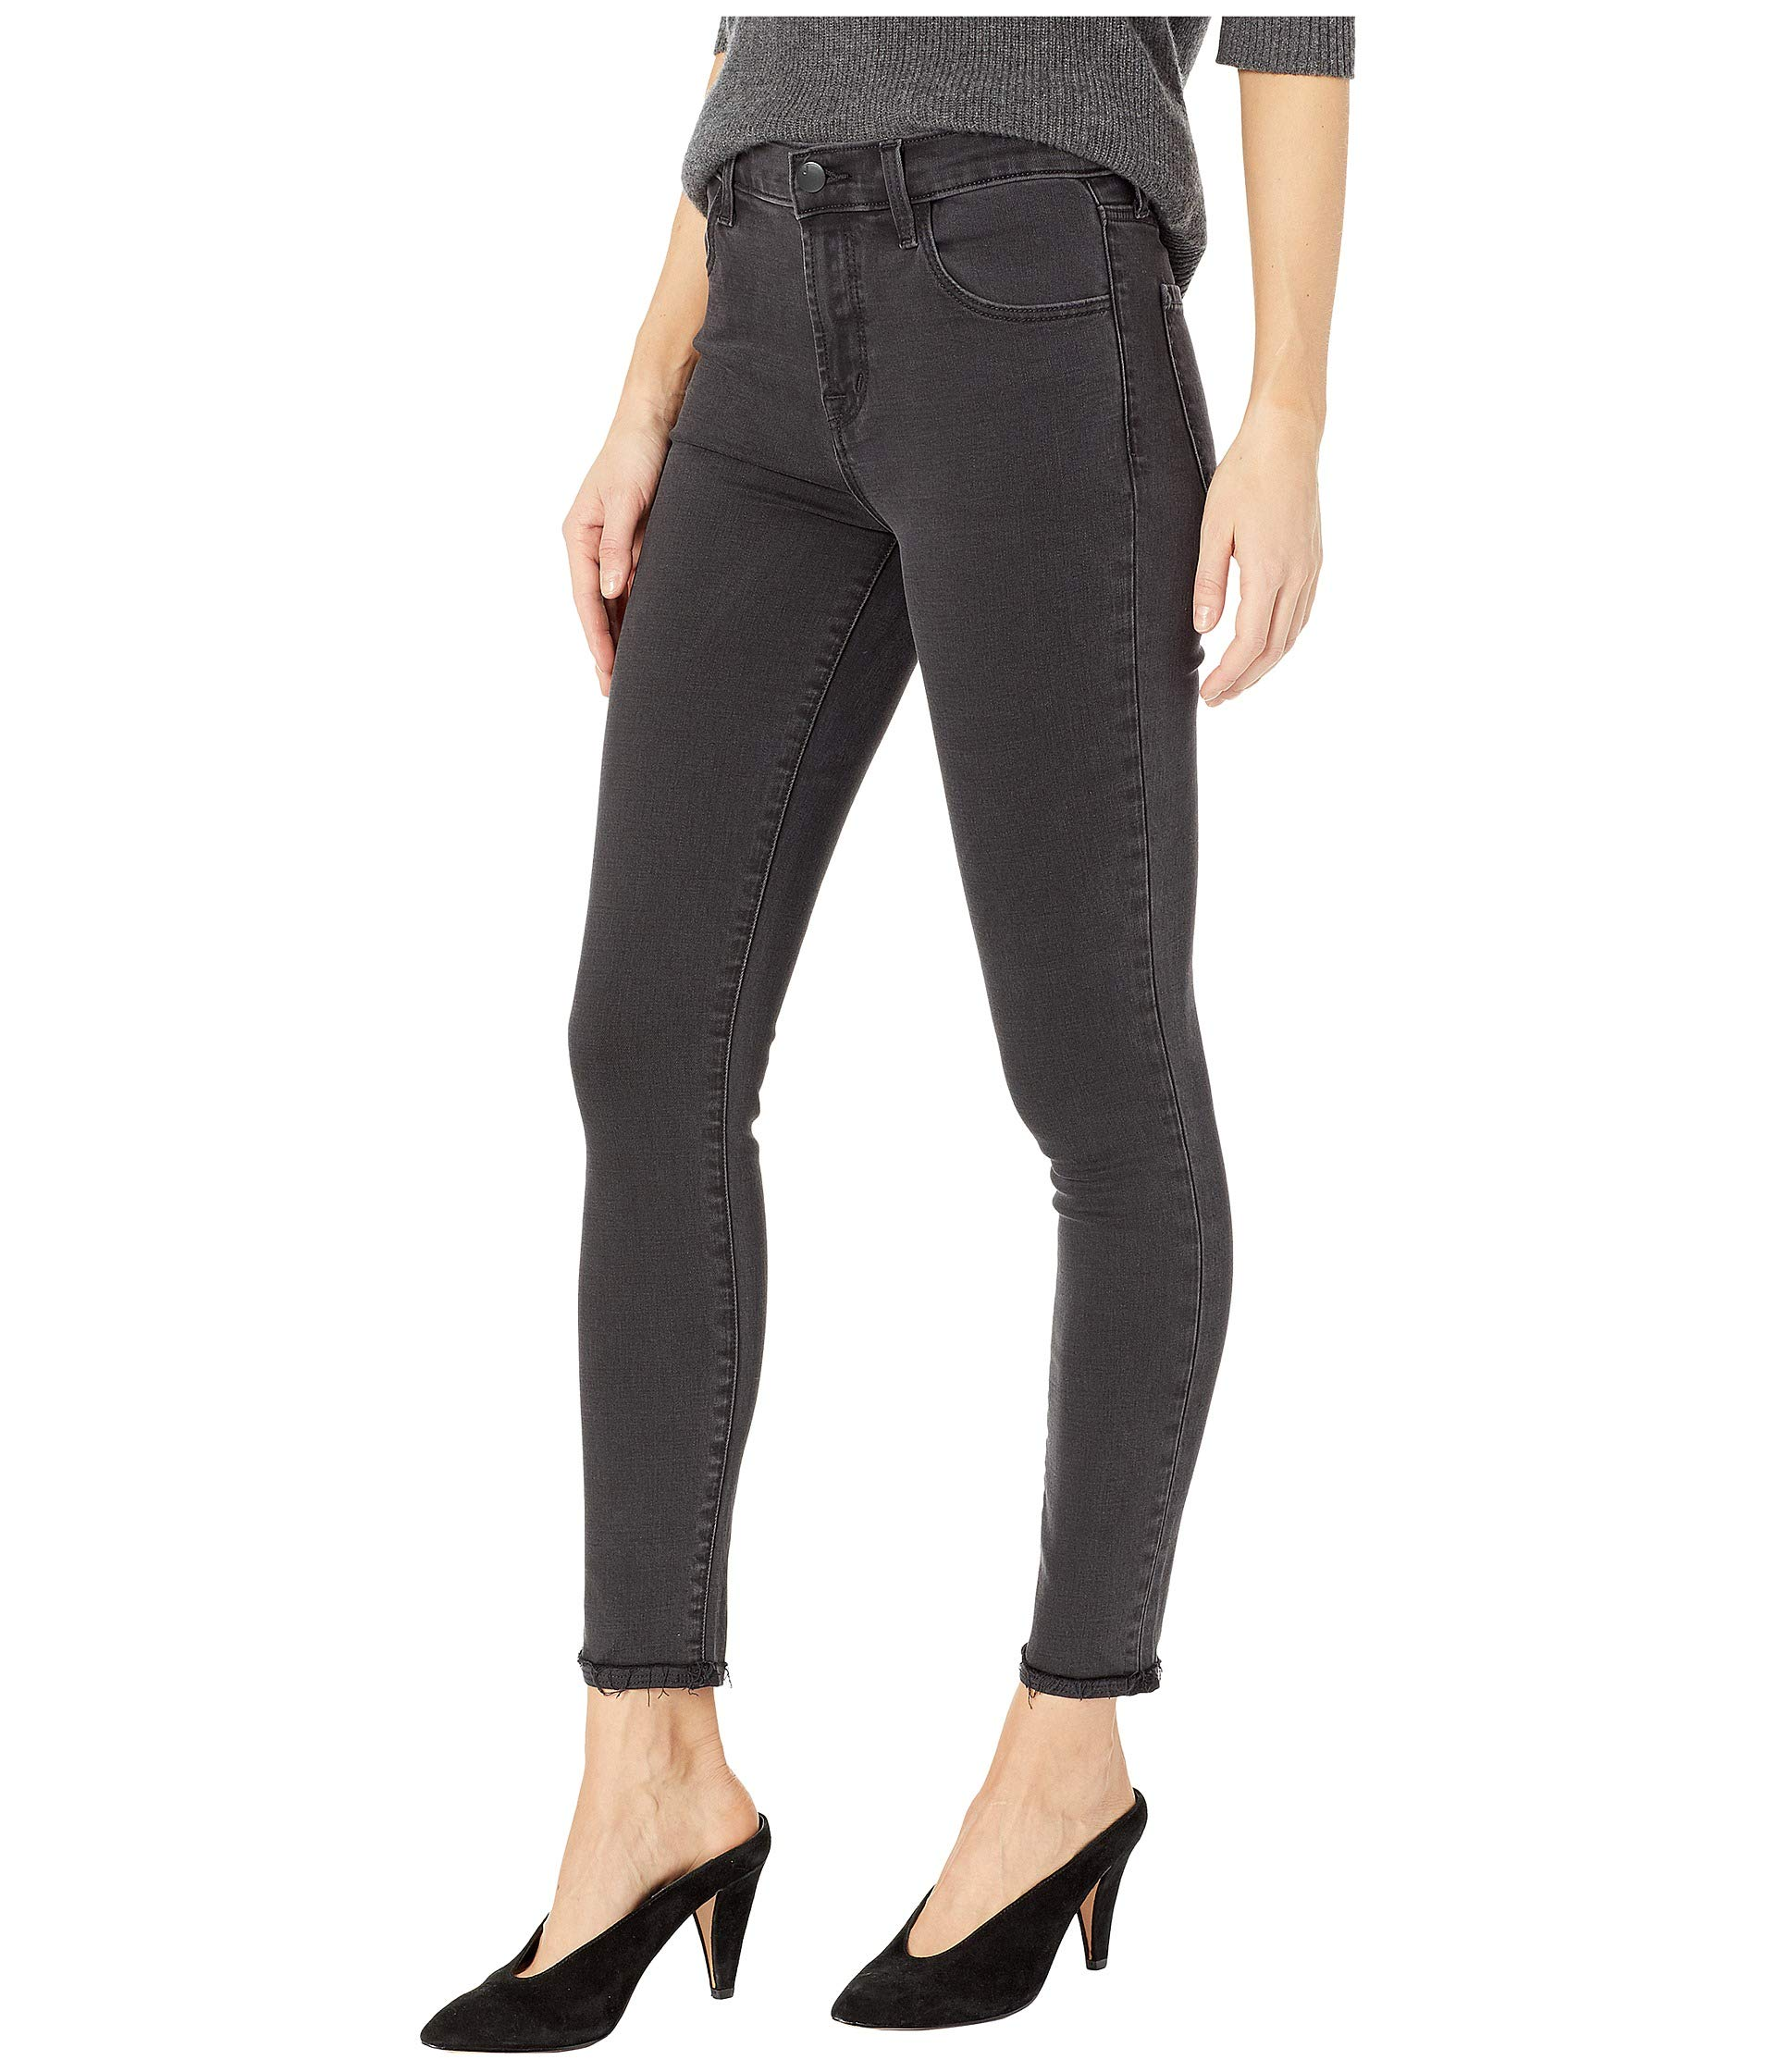 Spatial In rise Alana Skinny High Brand Jeans Crop J xqtX085wO